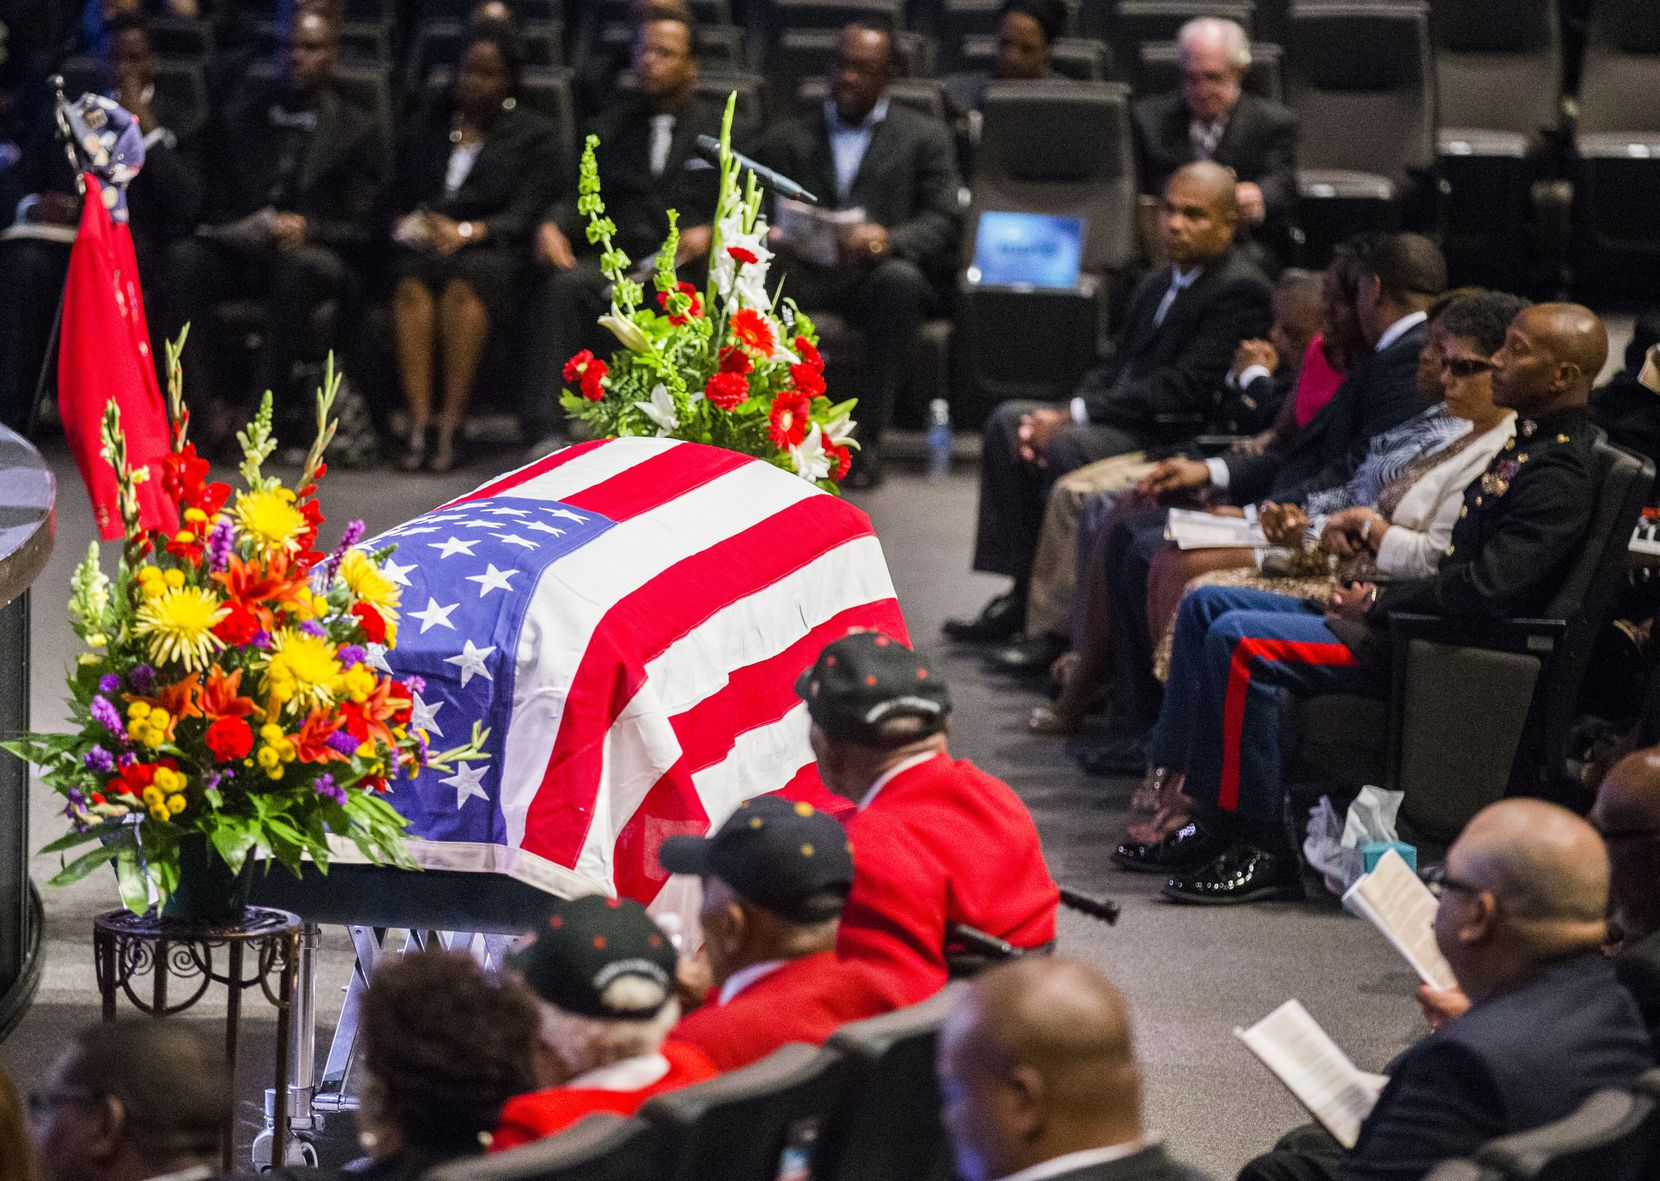 An American flag is draped over the casket of retired Army Air Corps 1st Lieutenant Calvin Spann during funeral services on Saturday, September 12, 2015 at Covenant Church in Carrollton, Texas.  Spann was an original Tuskegee Airman and fighter pilot with the 100th Fighter Squadron of the 332nd Fighter Group.  He served during World War II, when he flew 26 combat missions. (Ashley Landis/The Dallas Morning News)